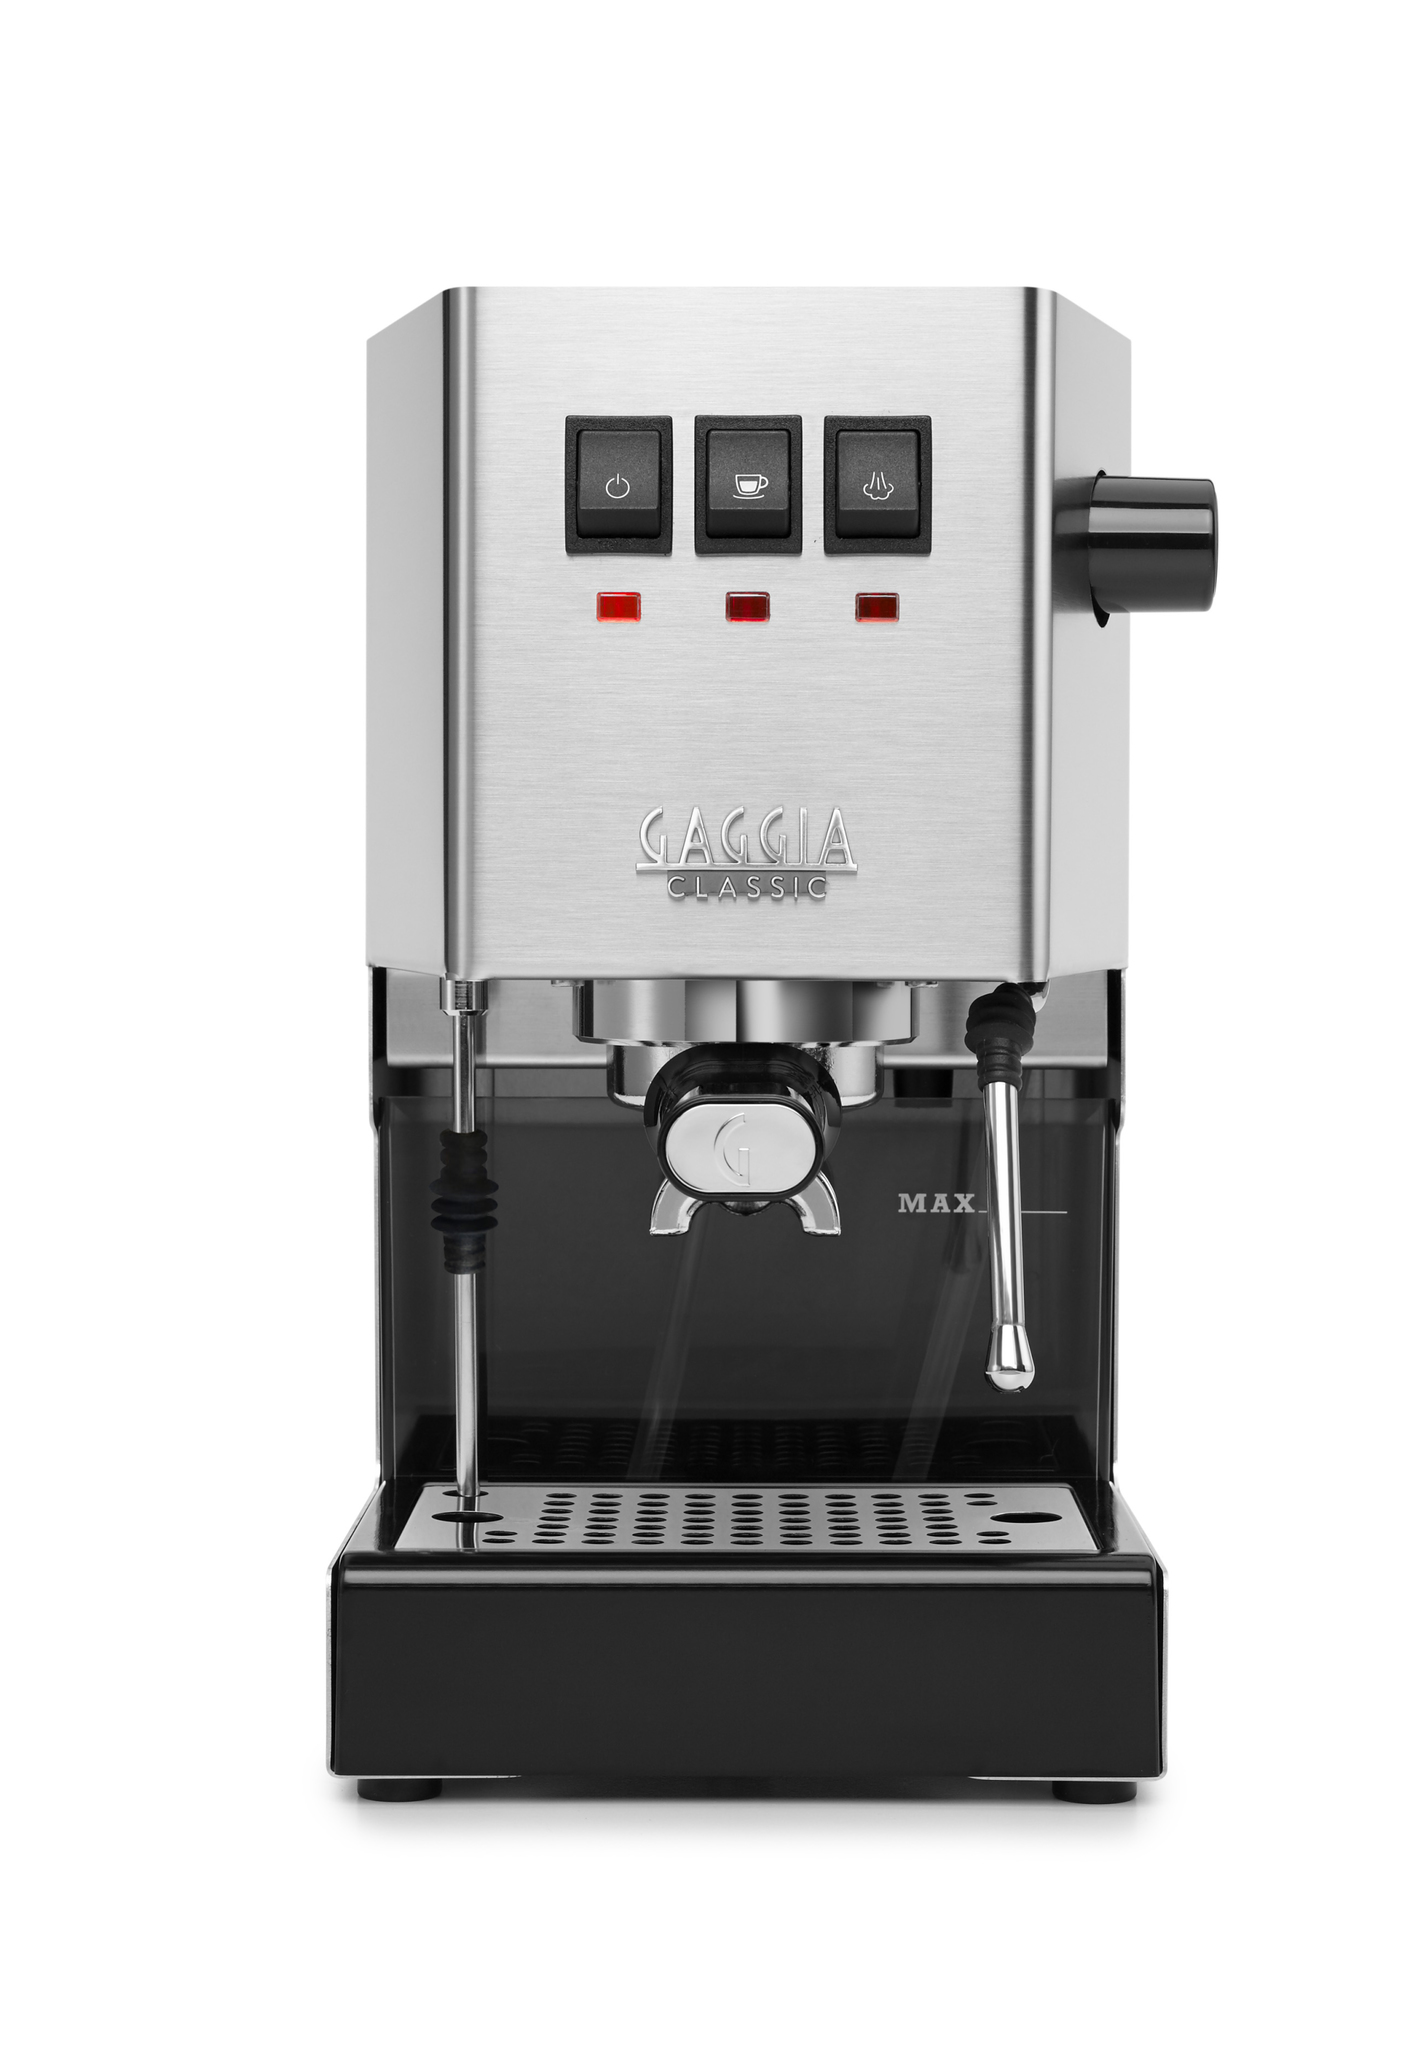 Gaggia Classic 2019 Manual Espresso Coffee Machine